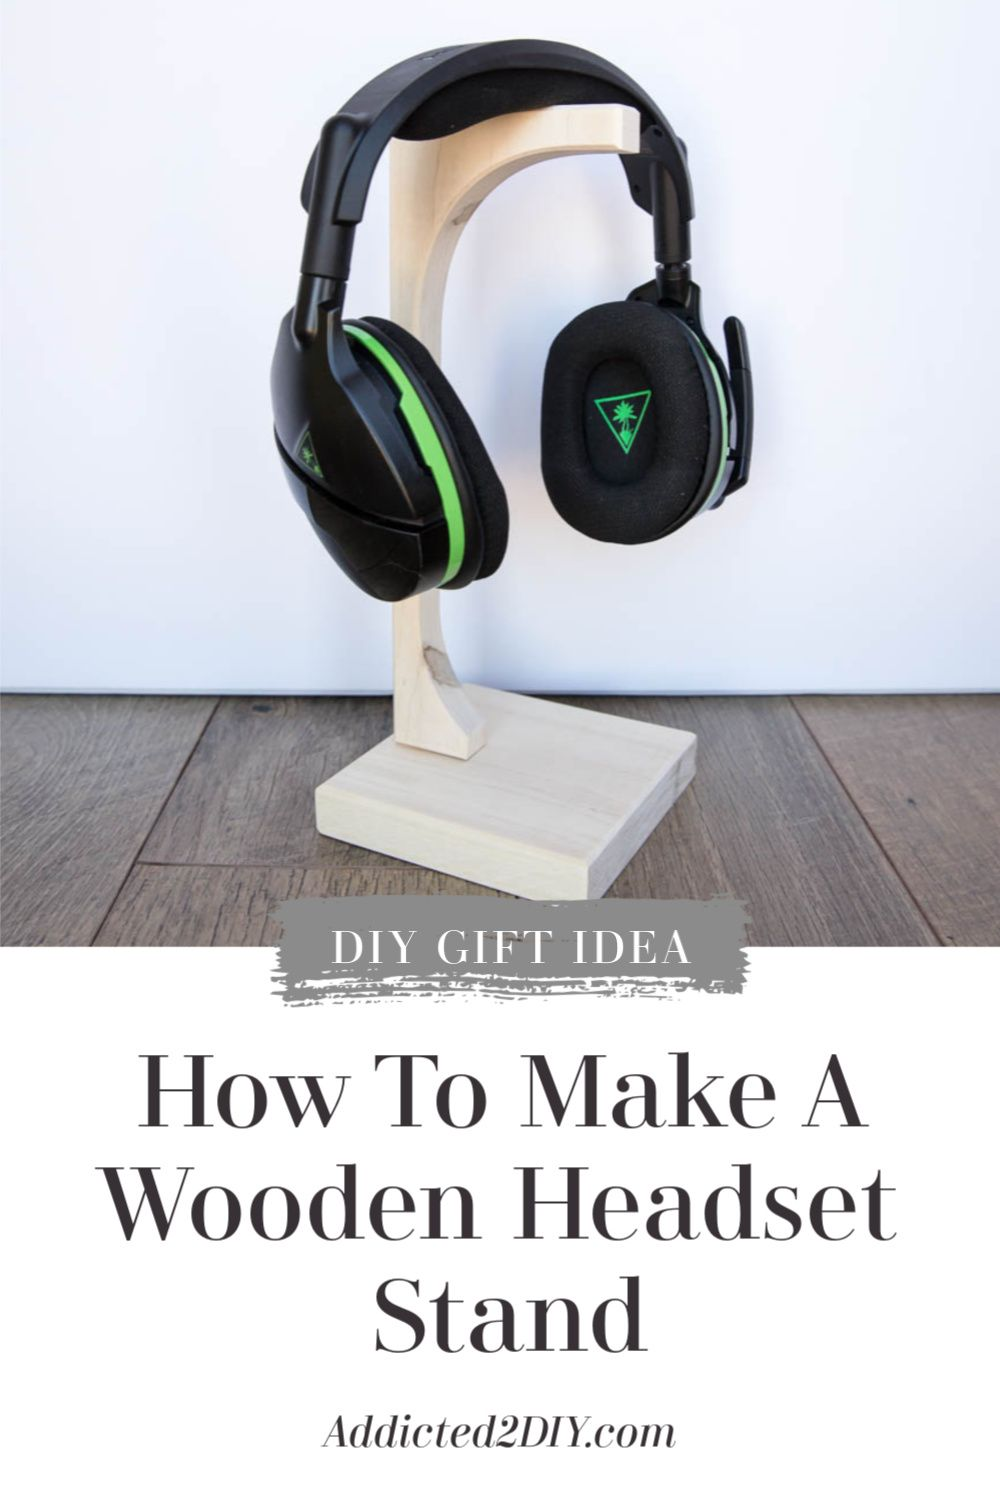 How To Make A Wooden Headset Stand